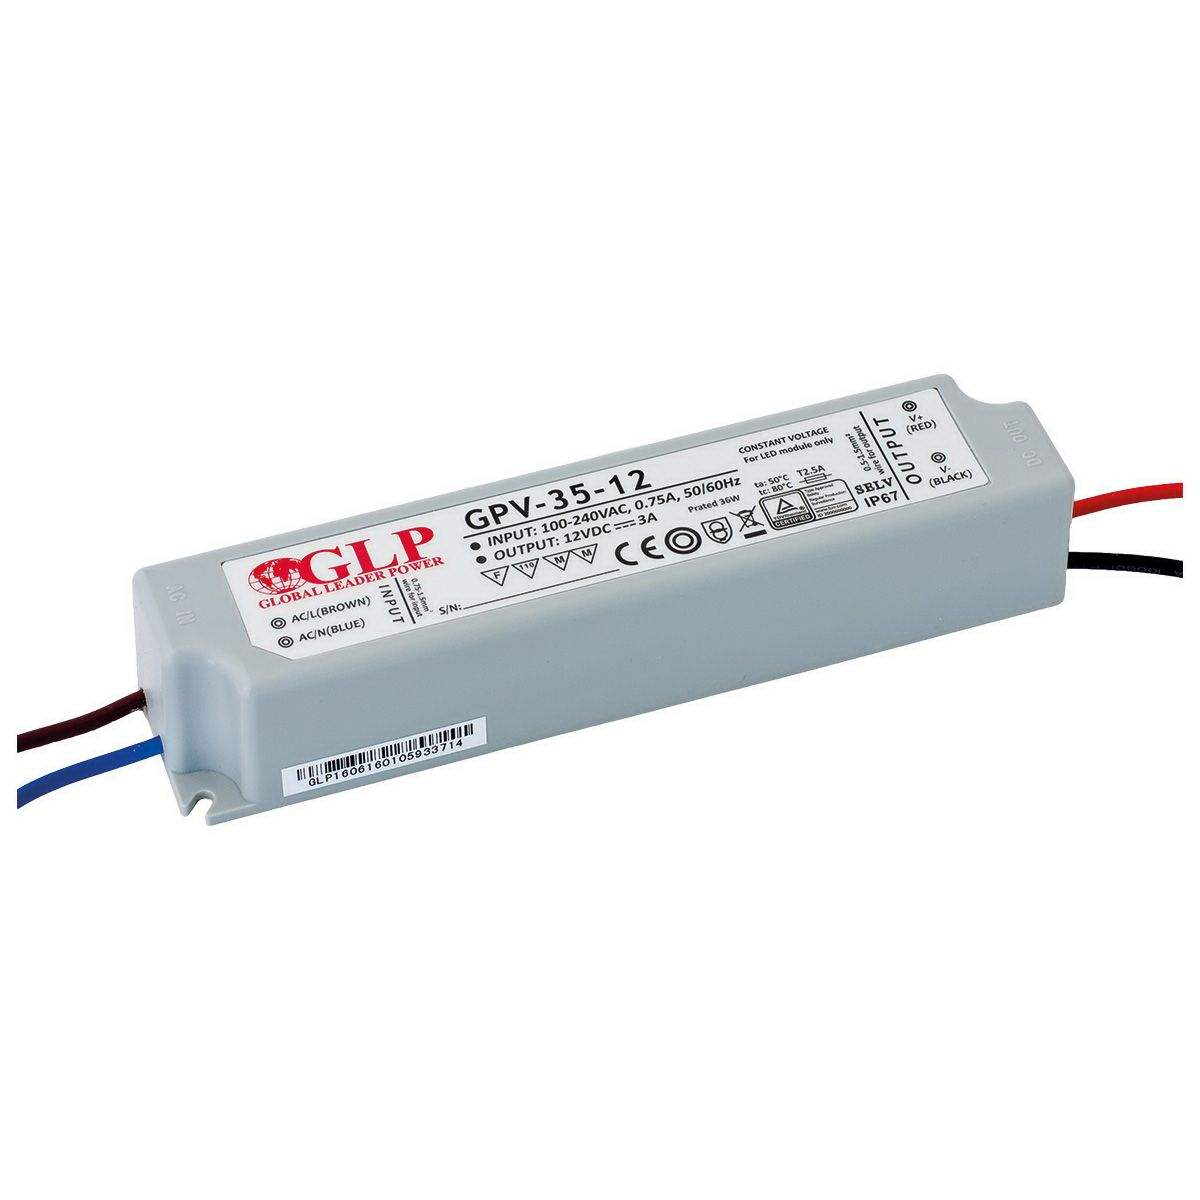 LED Toiteplokk LED Toiteplokk GLP POWER 12V DC GPV-35-12  36W  IP67